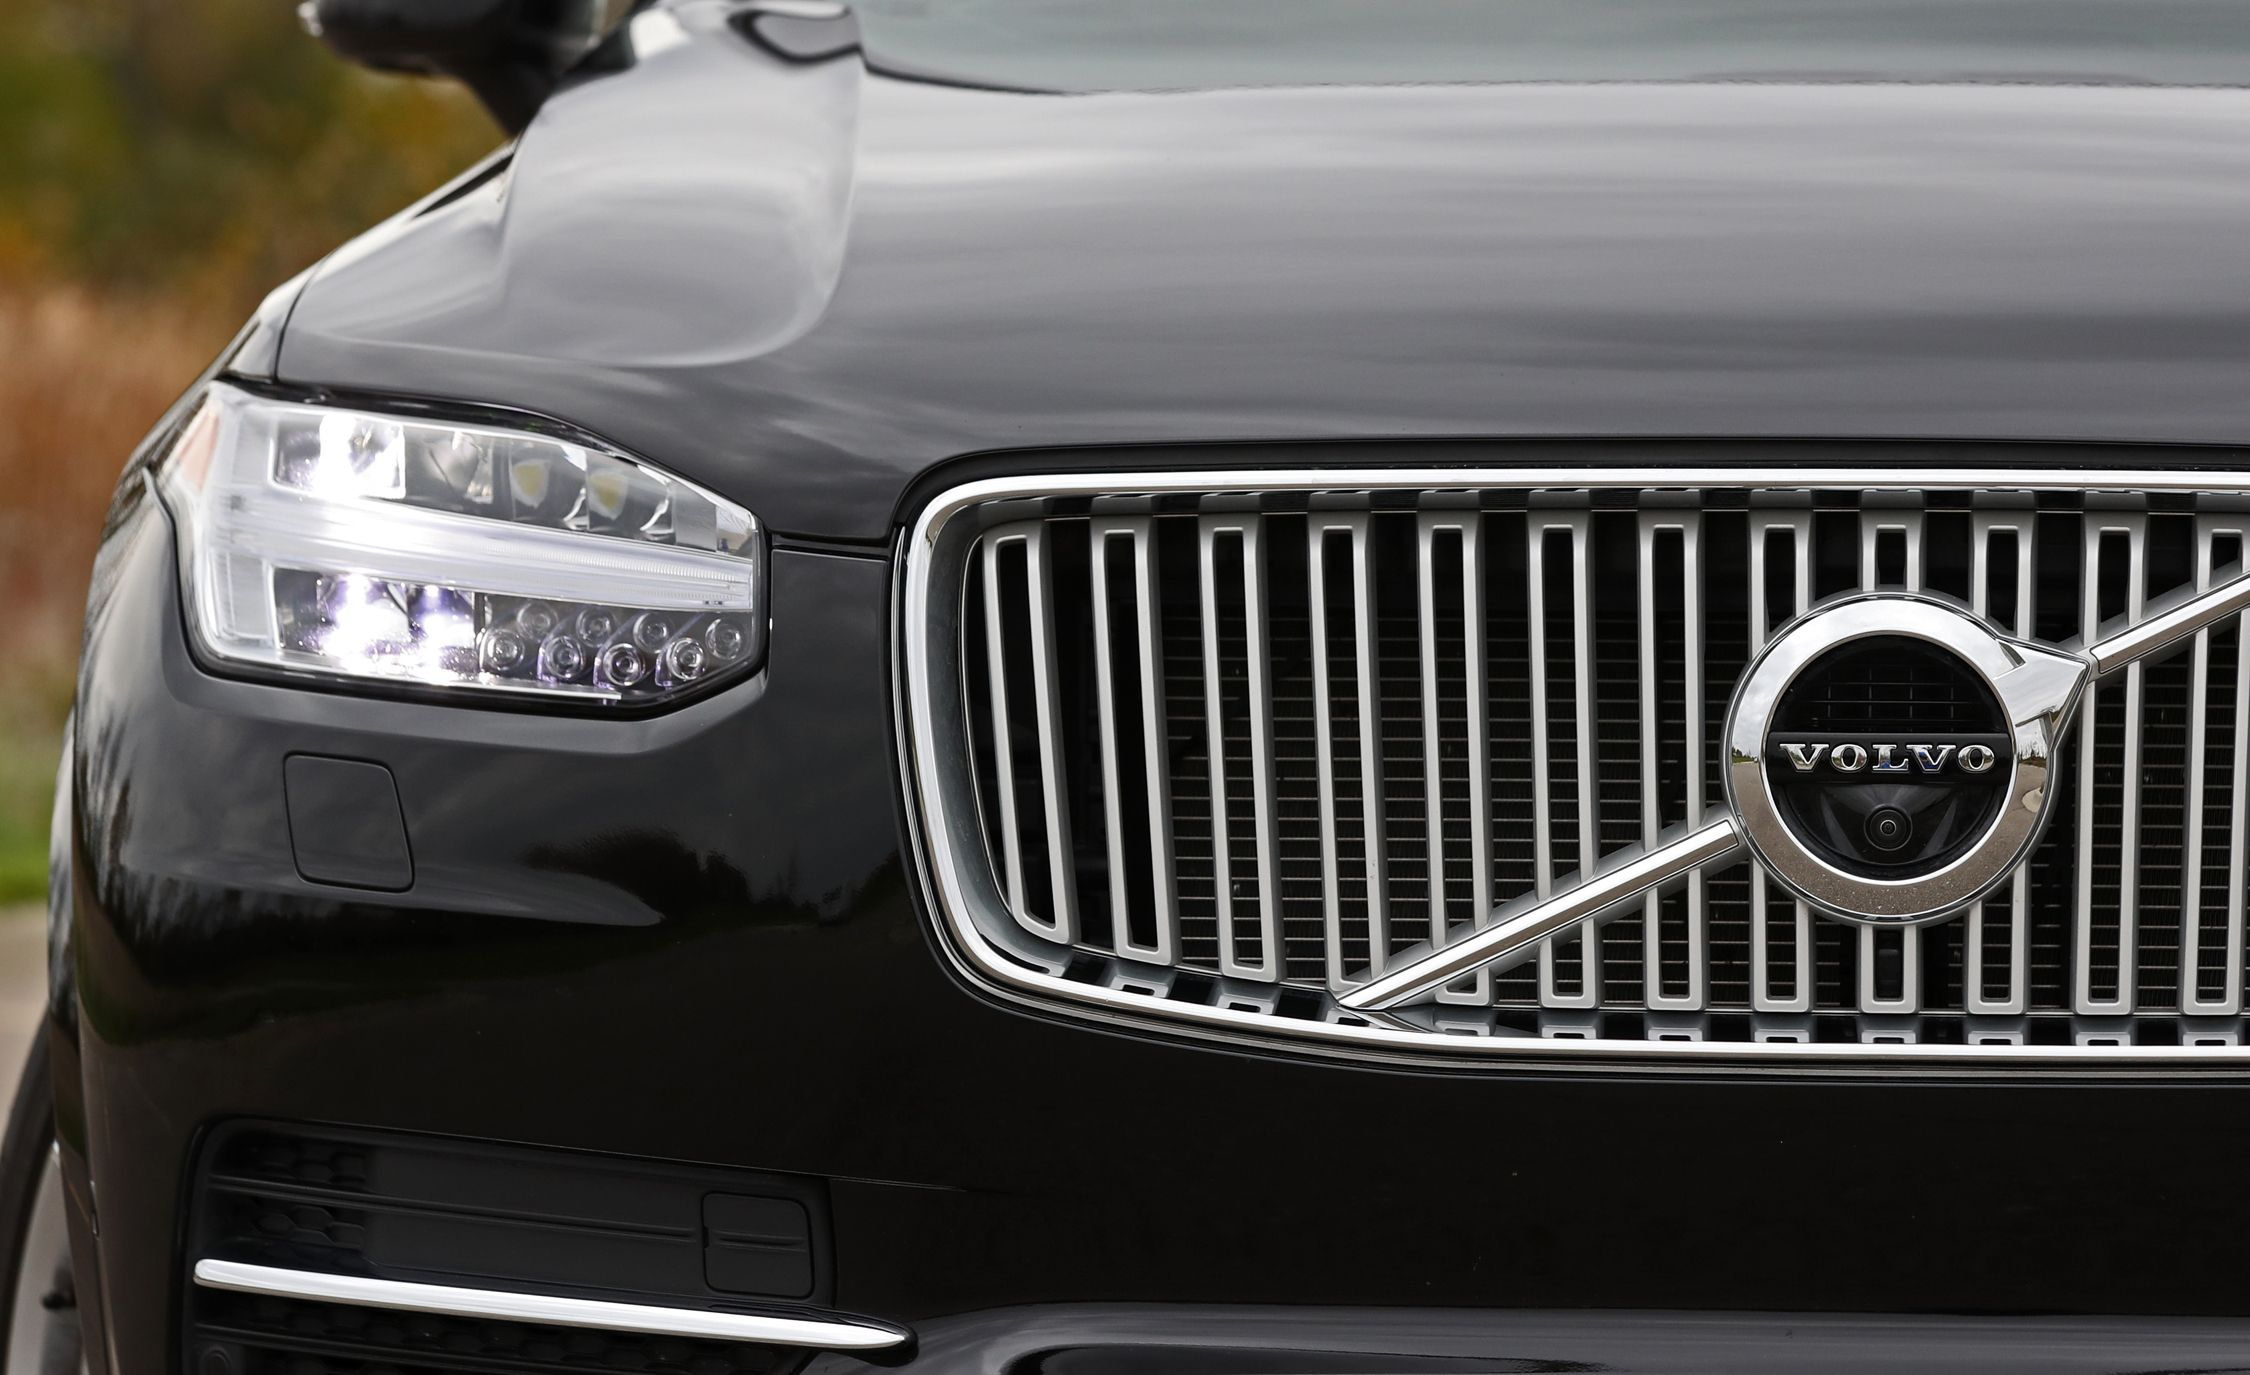 Volvo XC90 front headlight and grille